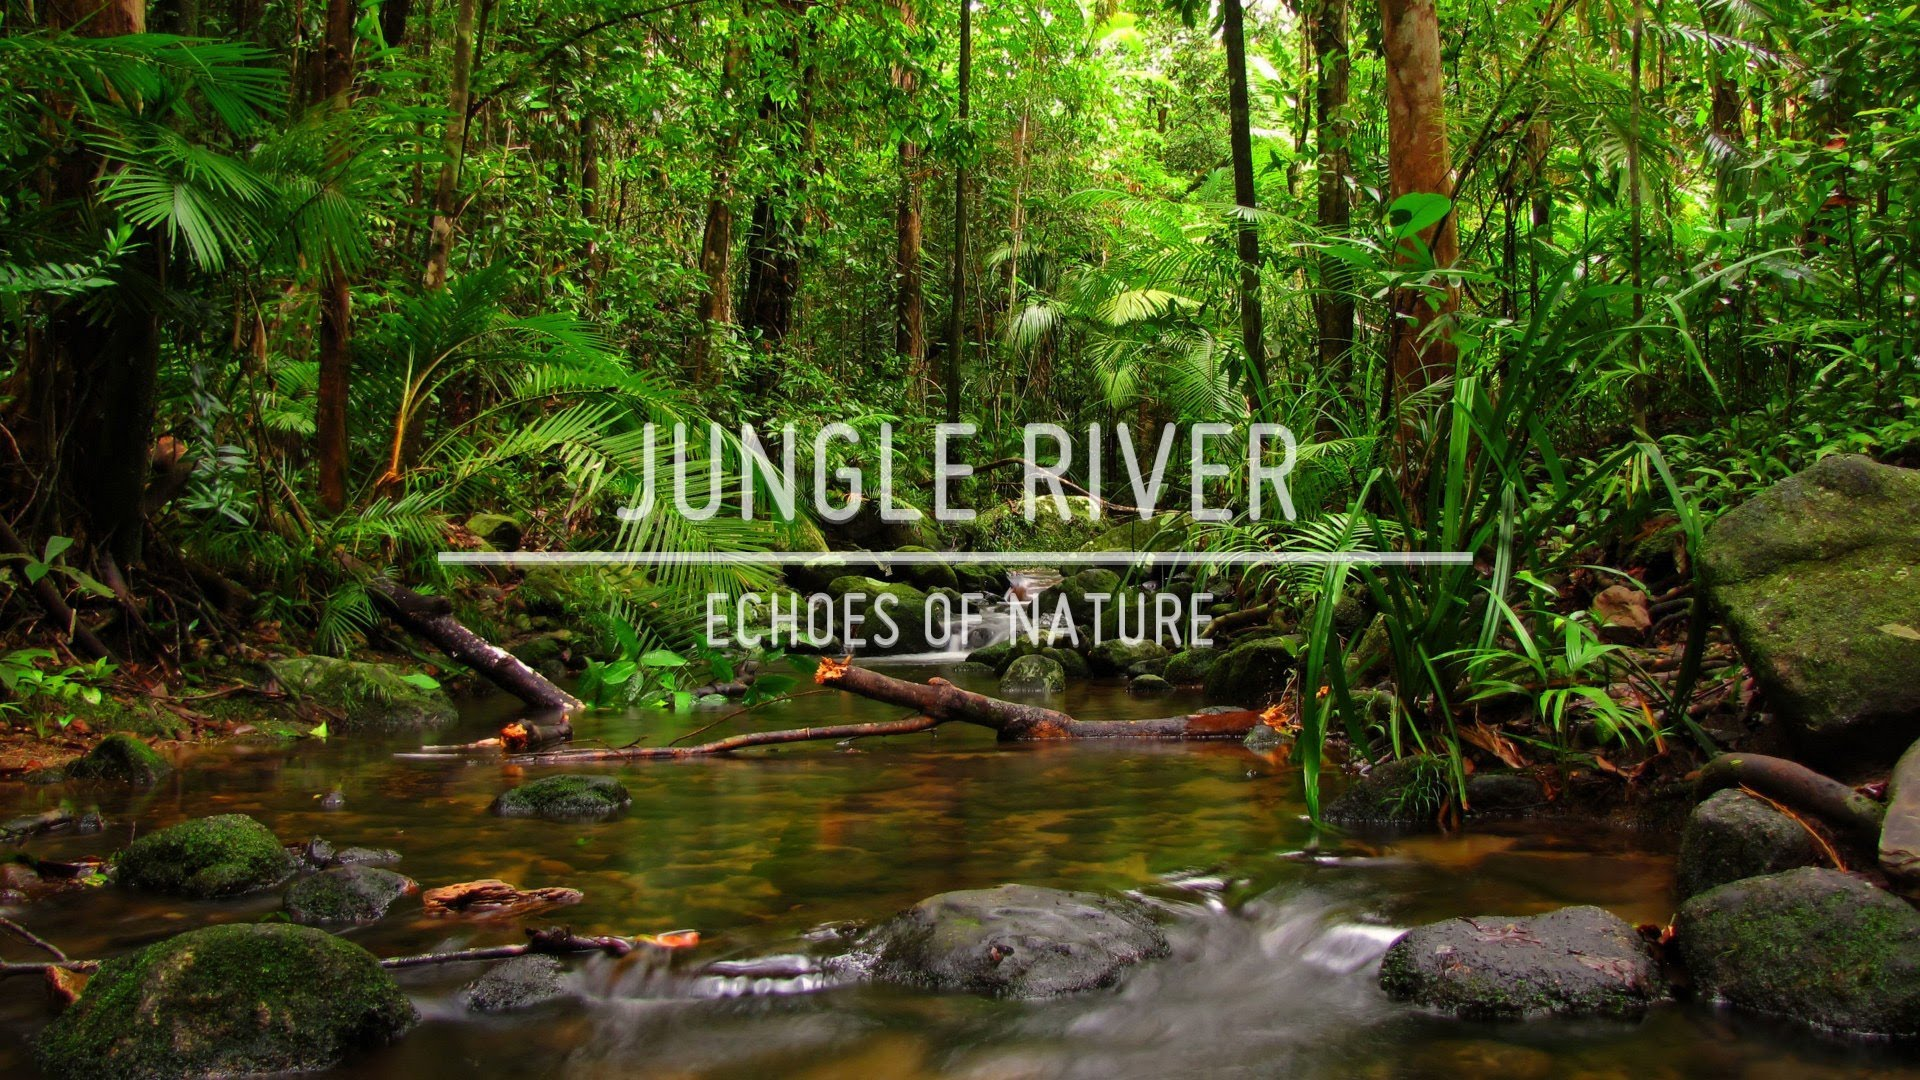 Echoes of Nature - Jungle River - YouTube